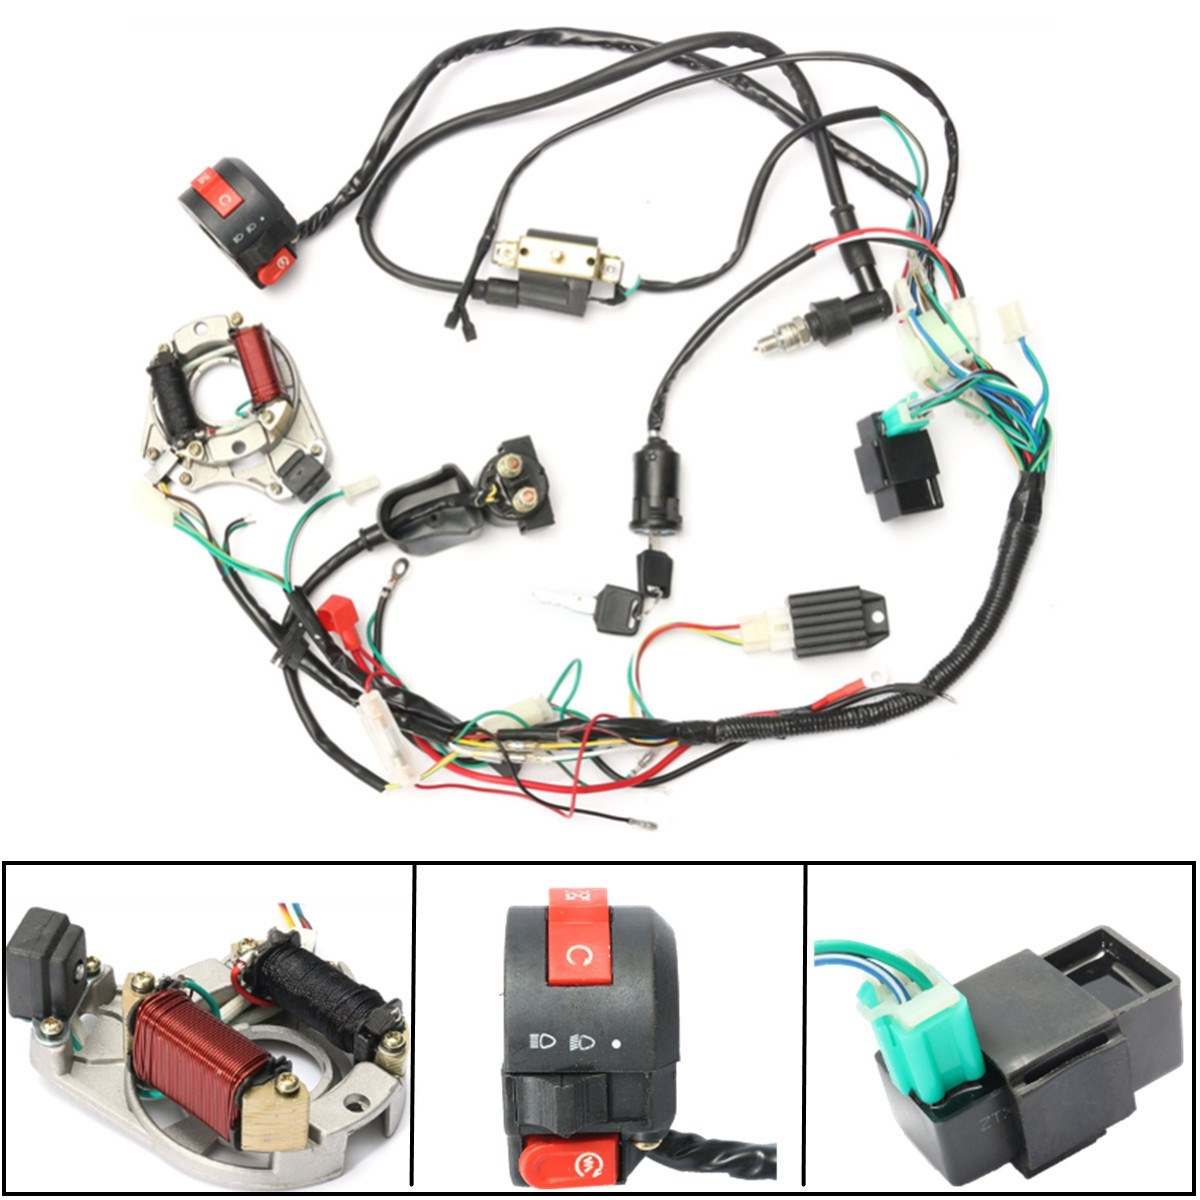 110 Atv Wiring Harness Kit Tsb Diagrams Eagle Diagram 50 70 90 110cc Cdi Wire Assembly Set For